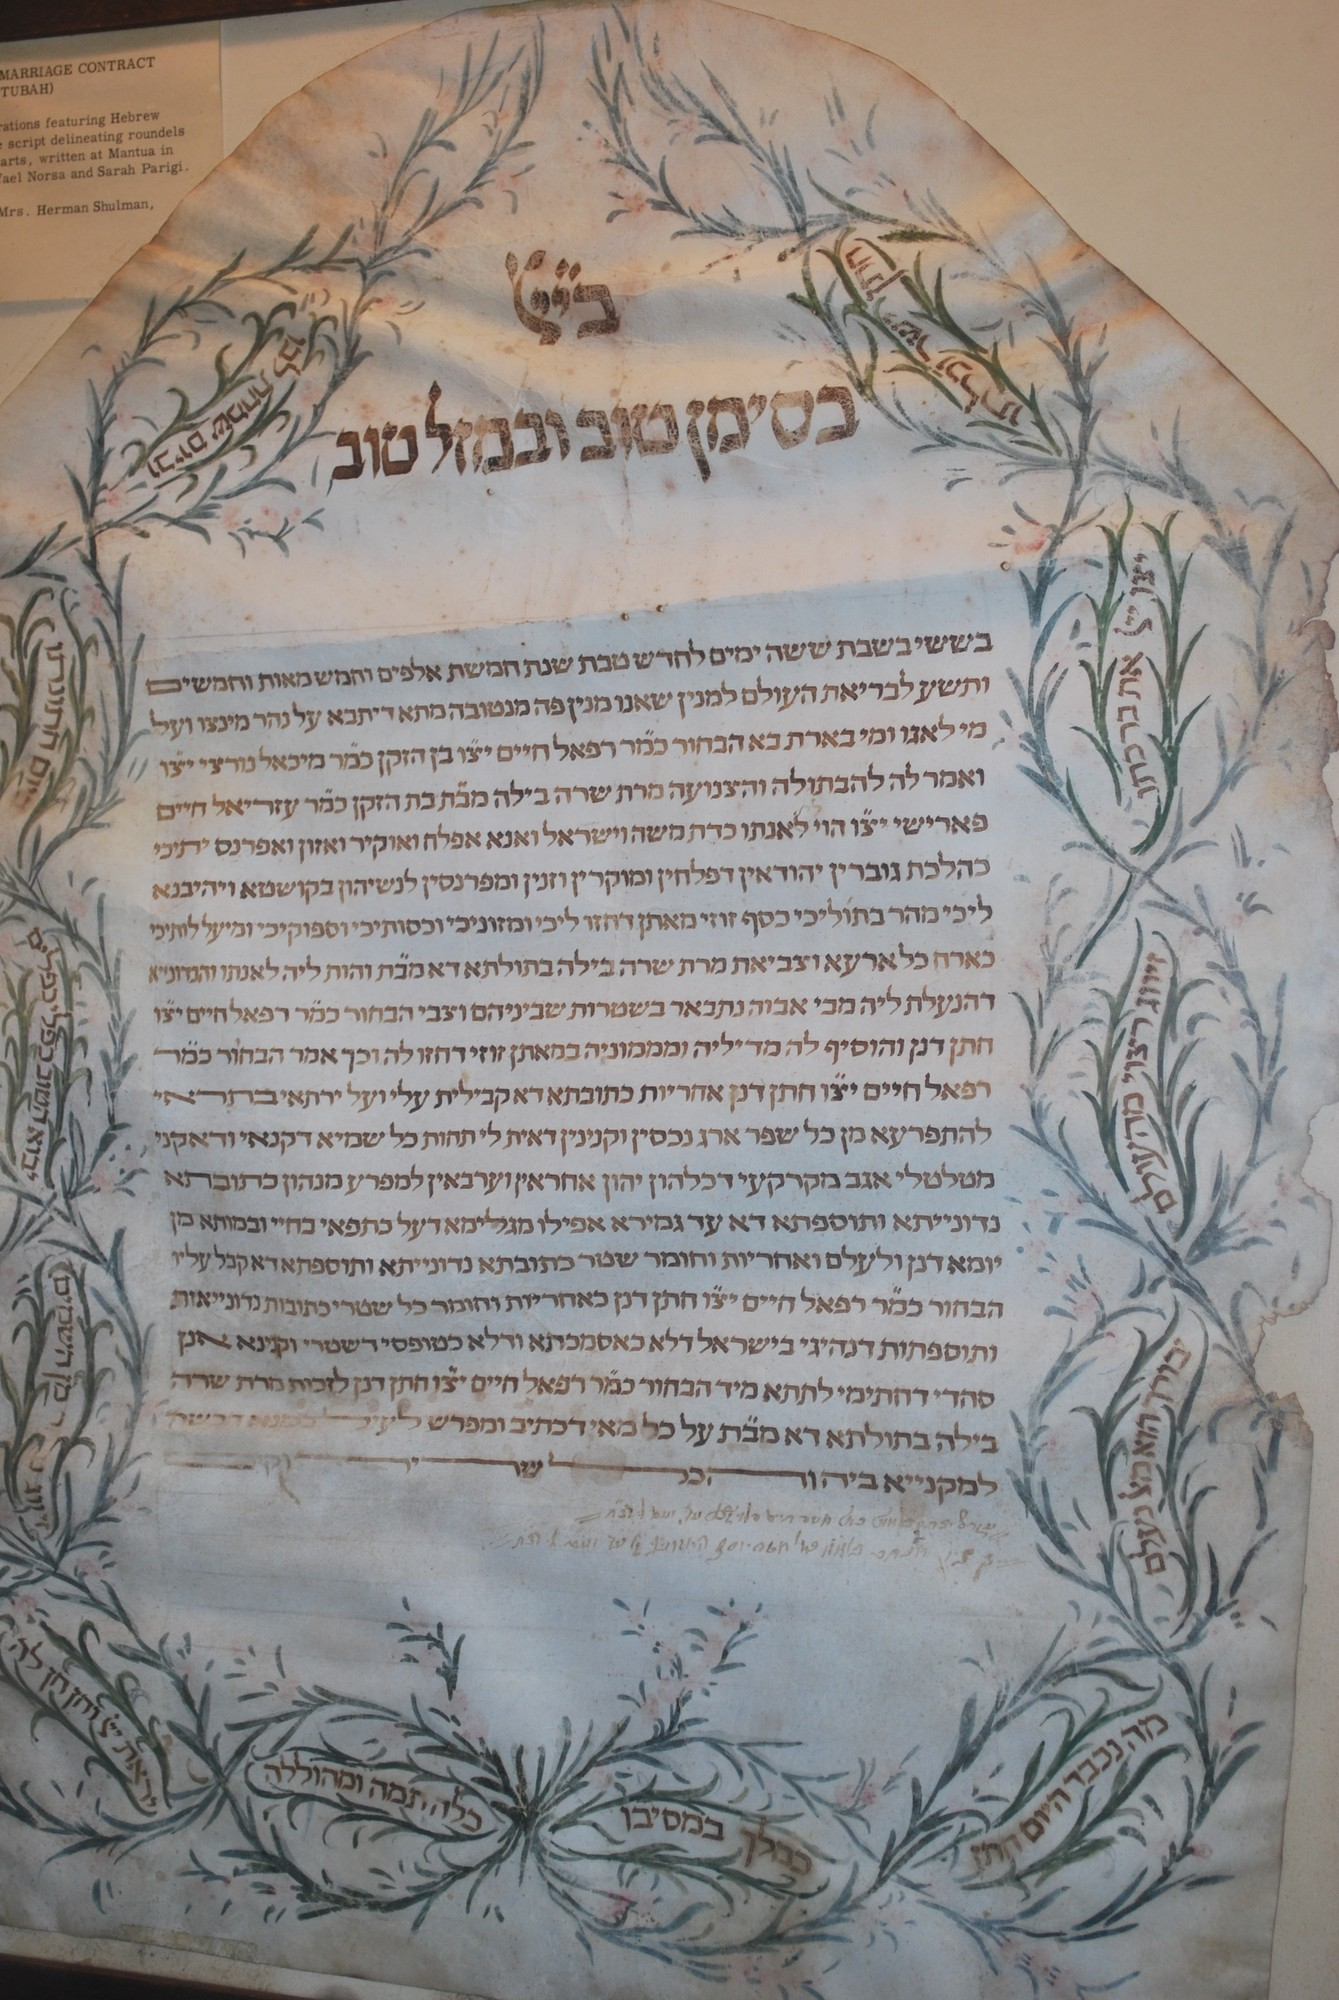 A 1799 ketubah on Italian parchment on display in the May Museum of Temple Israel. It is Jewish prenuptial agreement that outlines the rights and responsibilities of the groom, in relation to the bride.